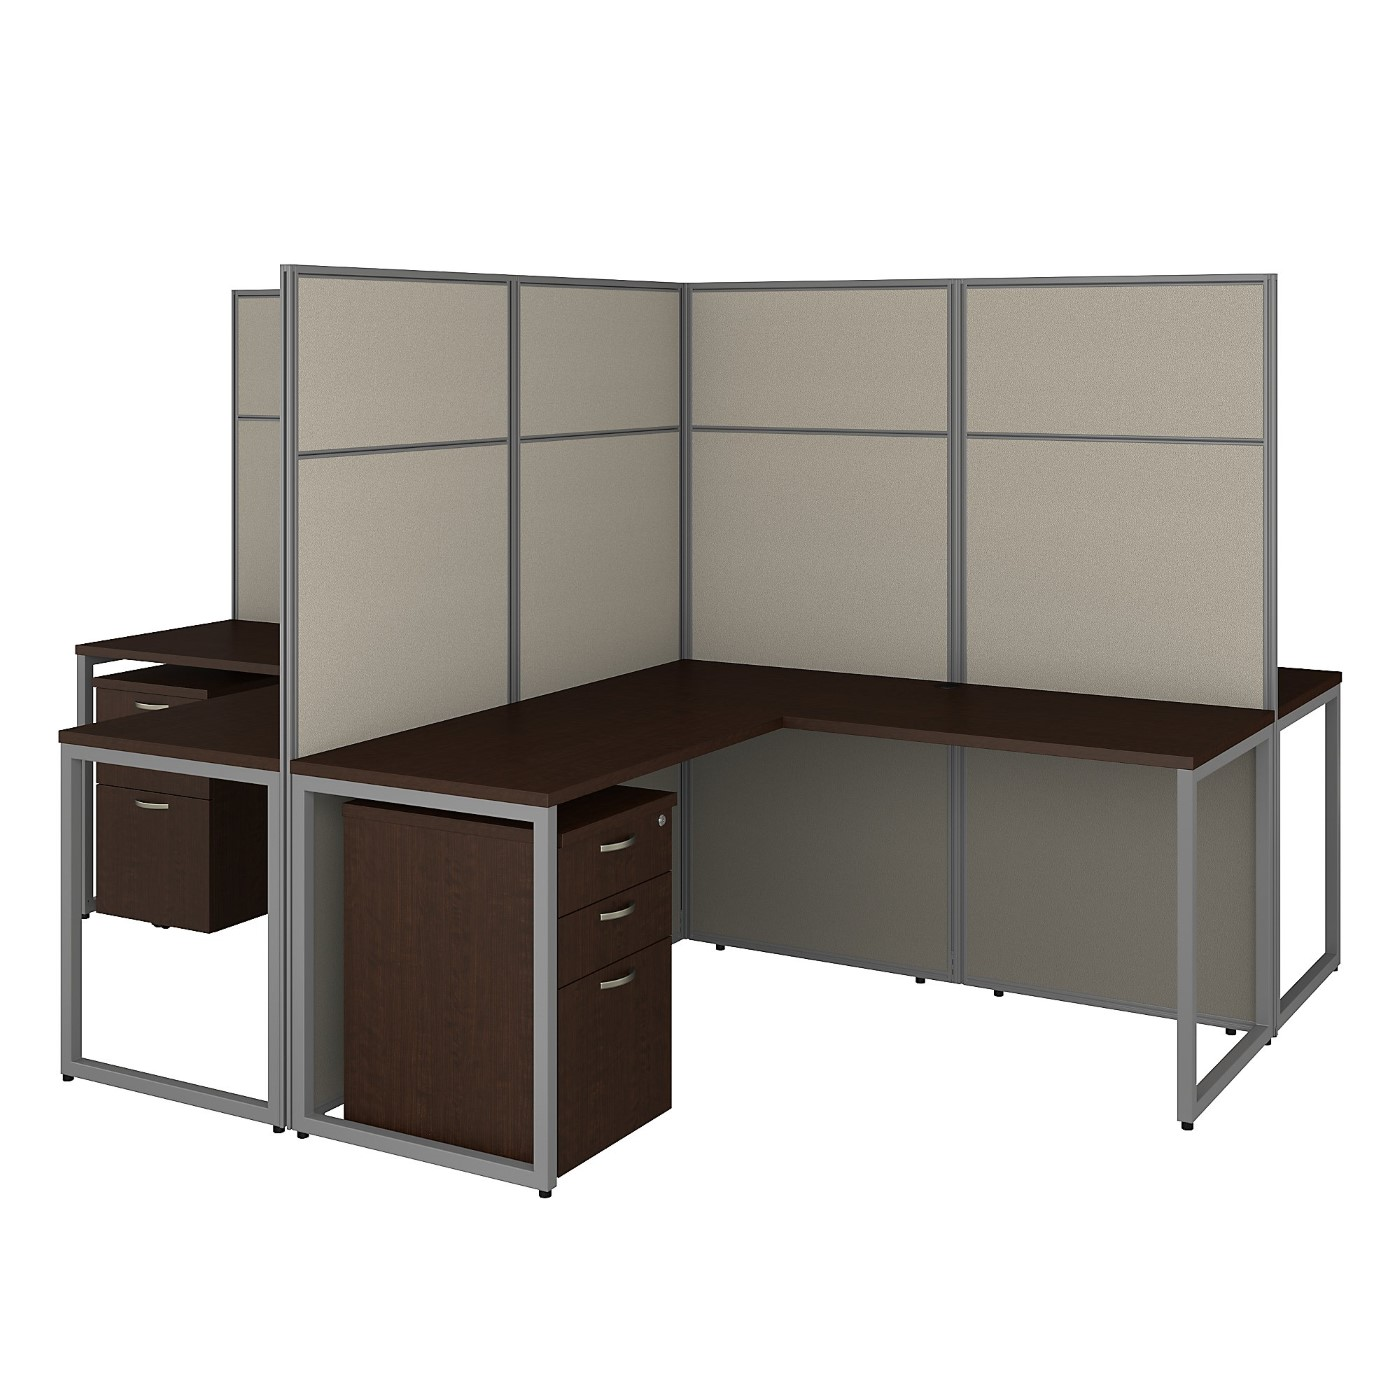 BUSH BUSINESS FURNITURE EASY OFFICE 60W 4 PERSON L SHAPED CUBICLE DESK WITH DRAWERS AND 66H PANELS. FREE SHIPPING 30H x 72L x 72W  VIDEO BELOW.  SALE DEDUCT 10% MORE ENTER '10percent' IN COUPON CODE BOX WHILE CHECKING OUT. ENDS 5-31-20.